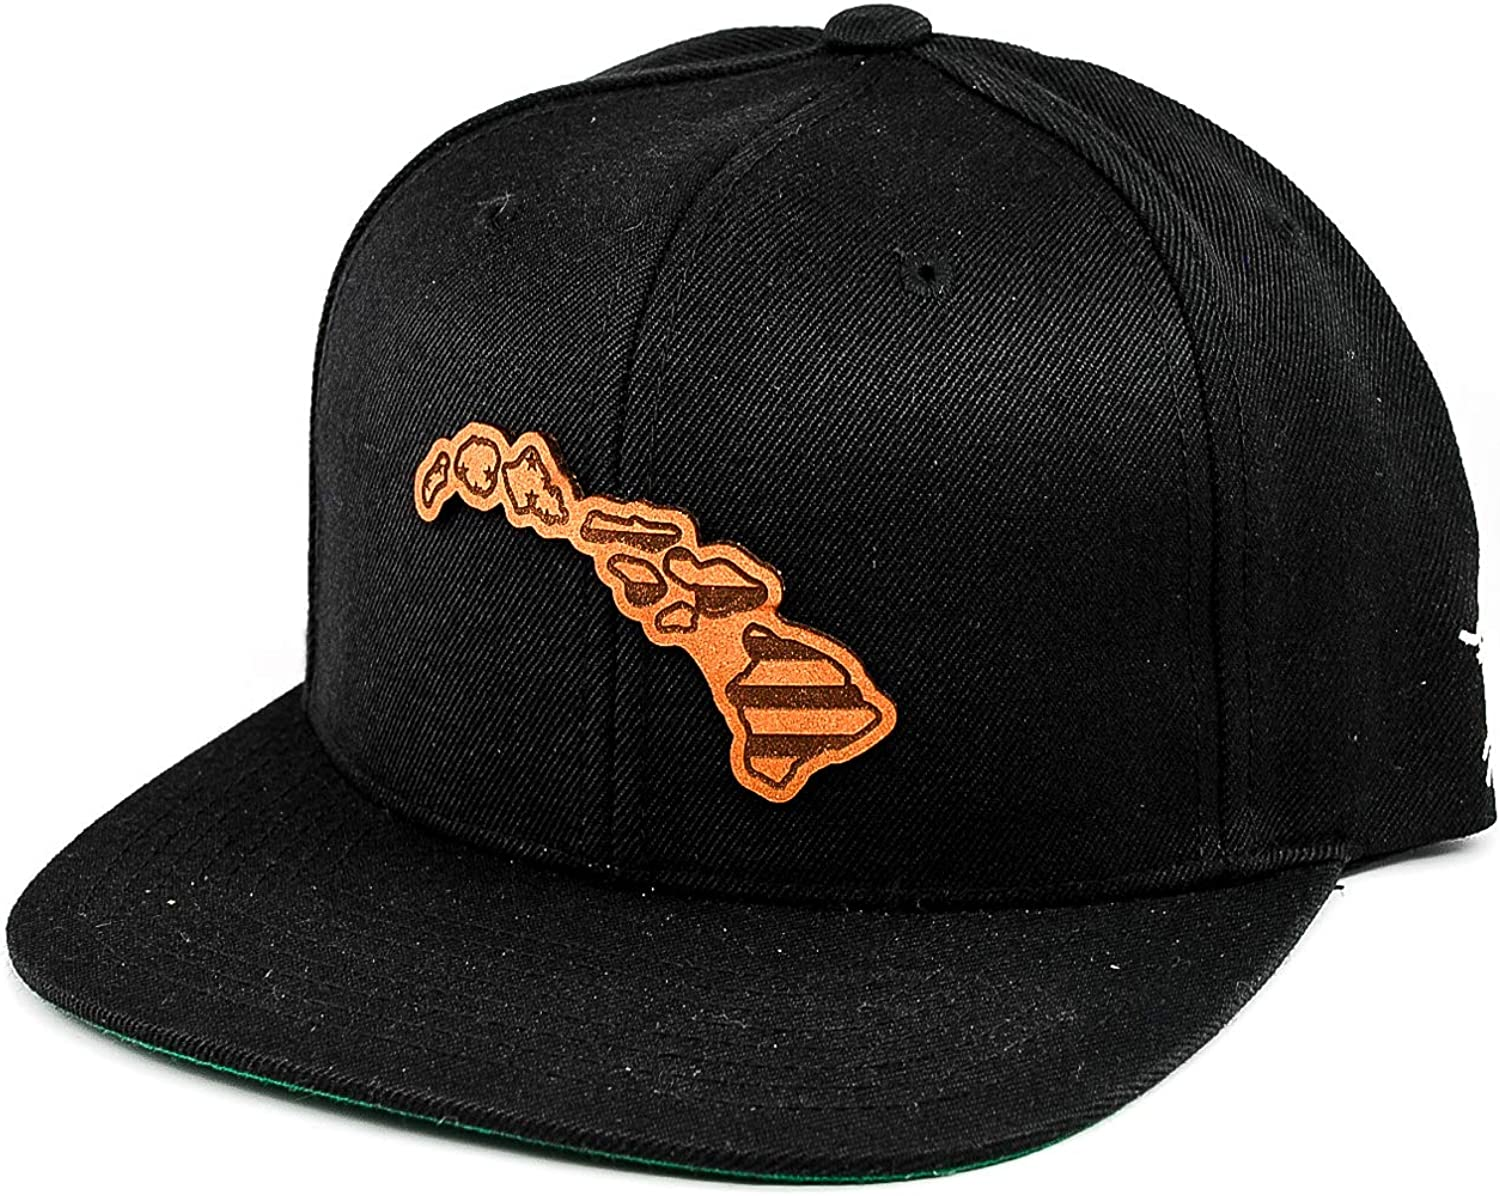 Branded Bills /'Hawaii Patriot/' Leather Patch Snapback Hat OSFA//Black